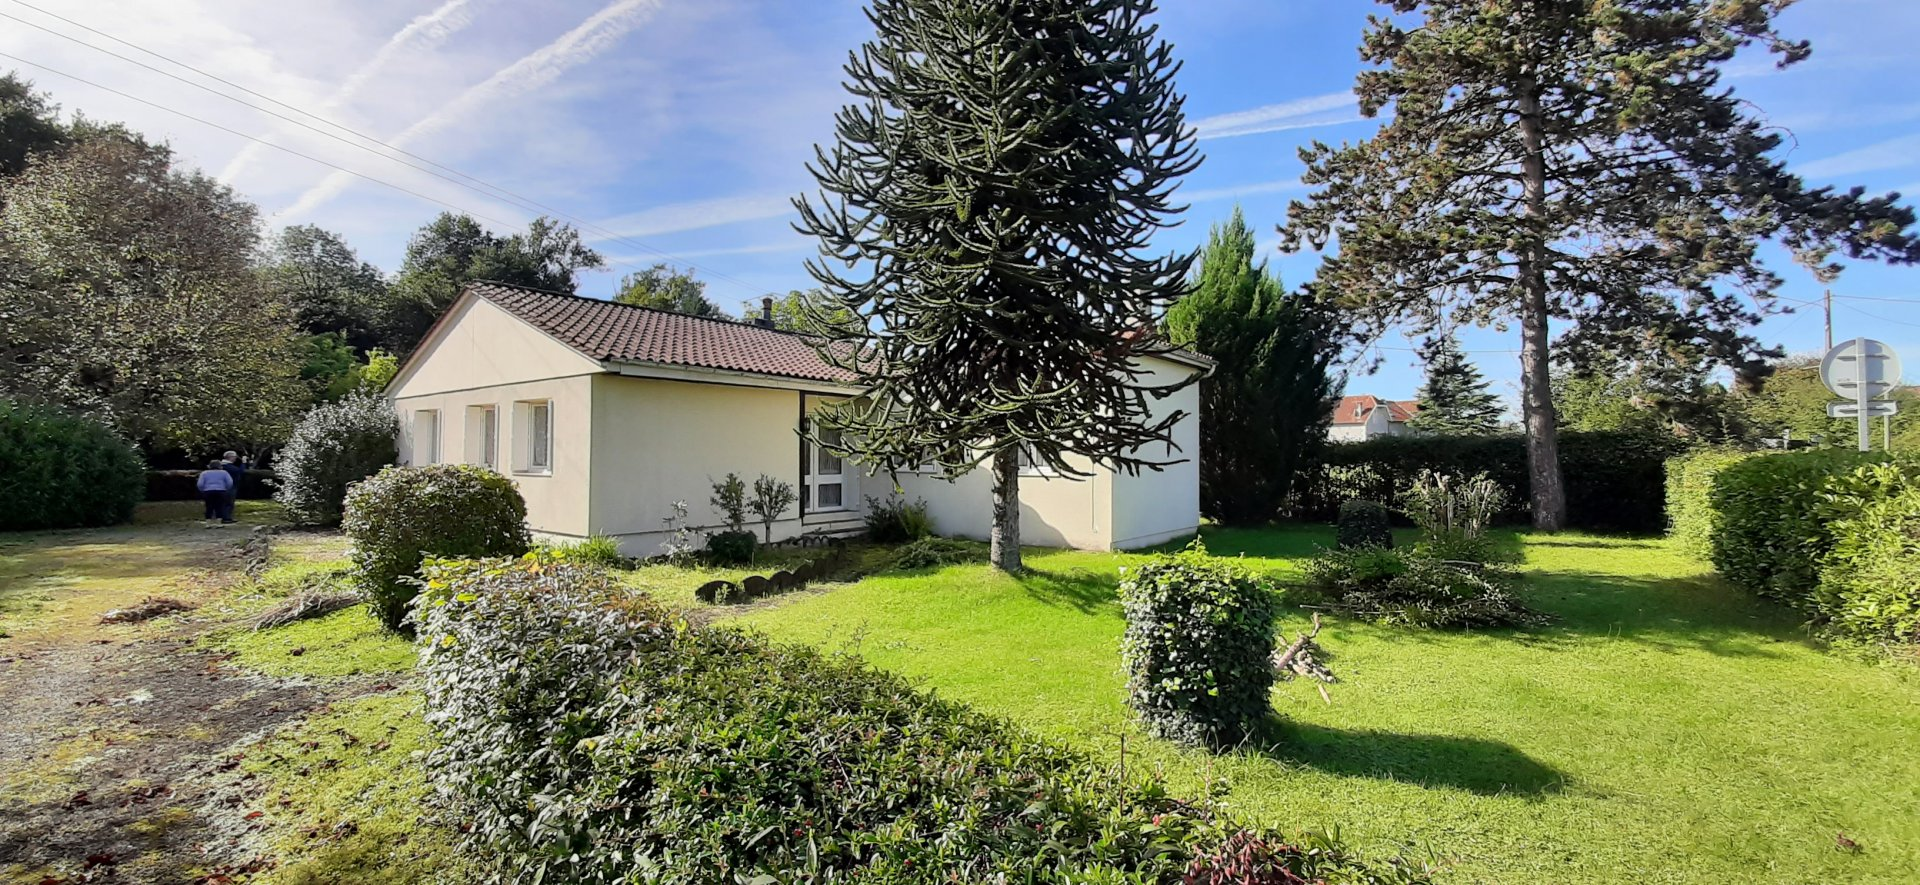 Single story house with pretty garden, swimming pool and walking distance to amenities